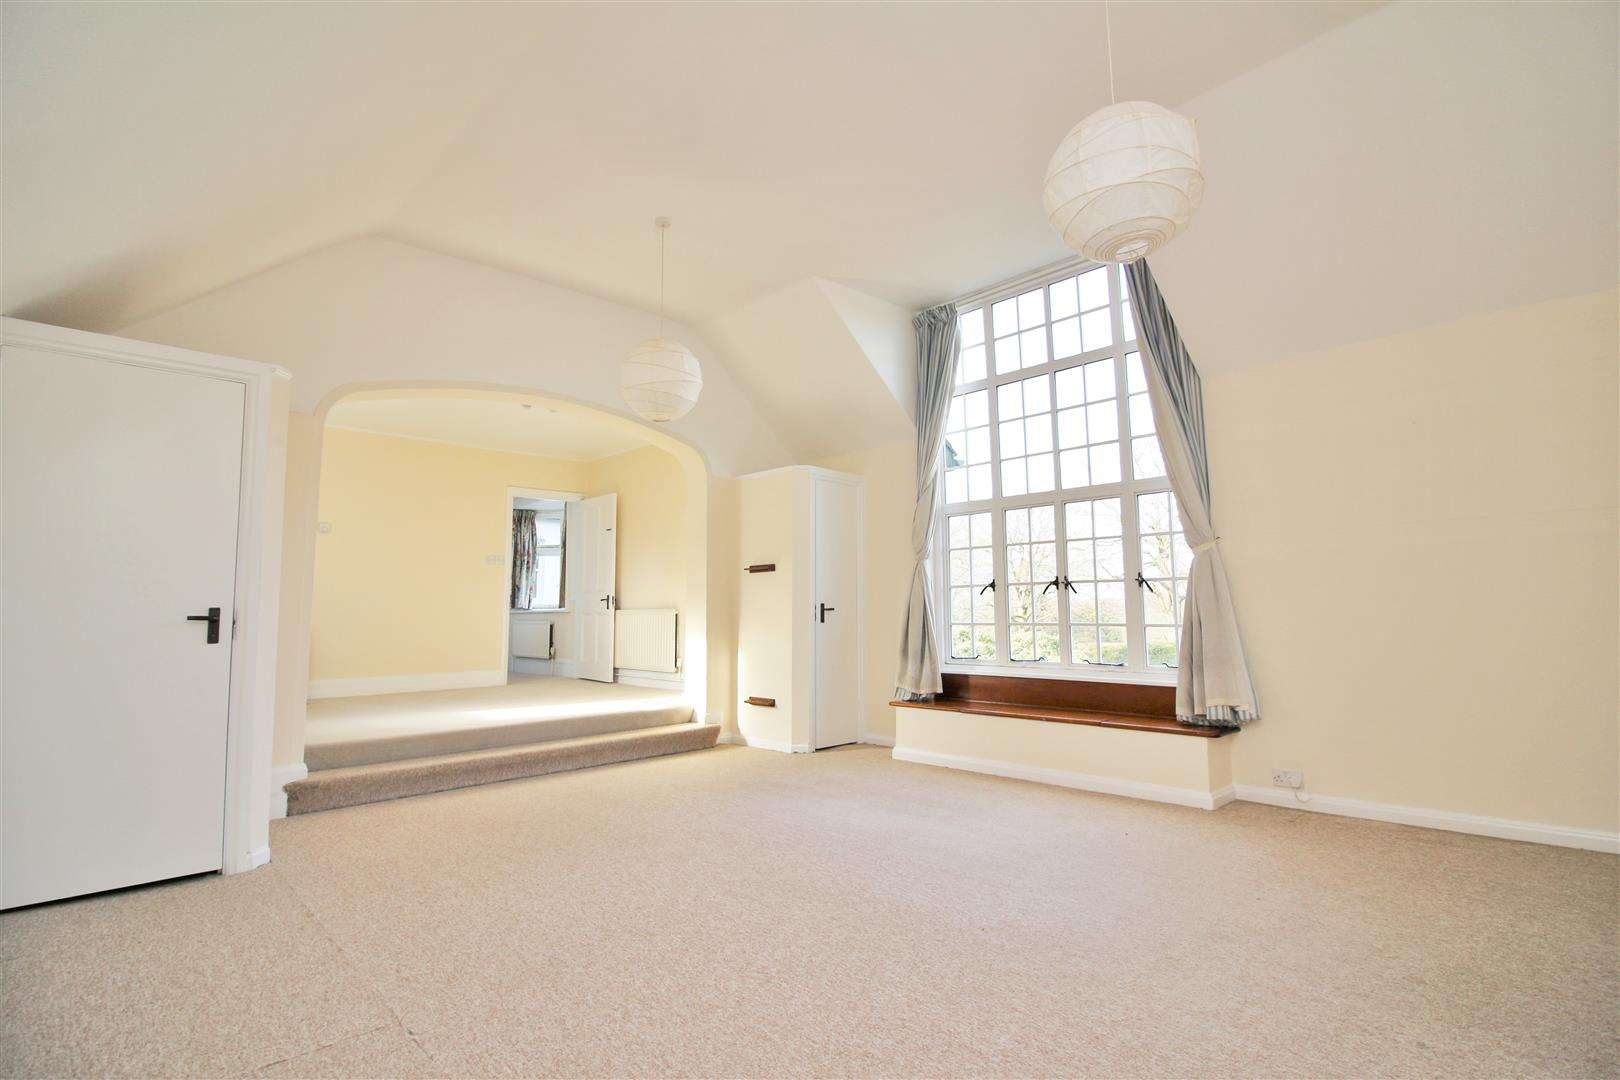 5 bed to rent - (Property Image 9)